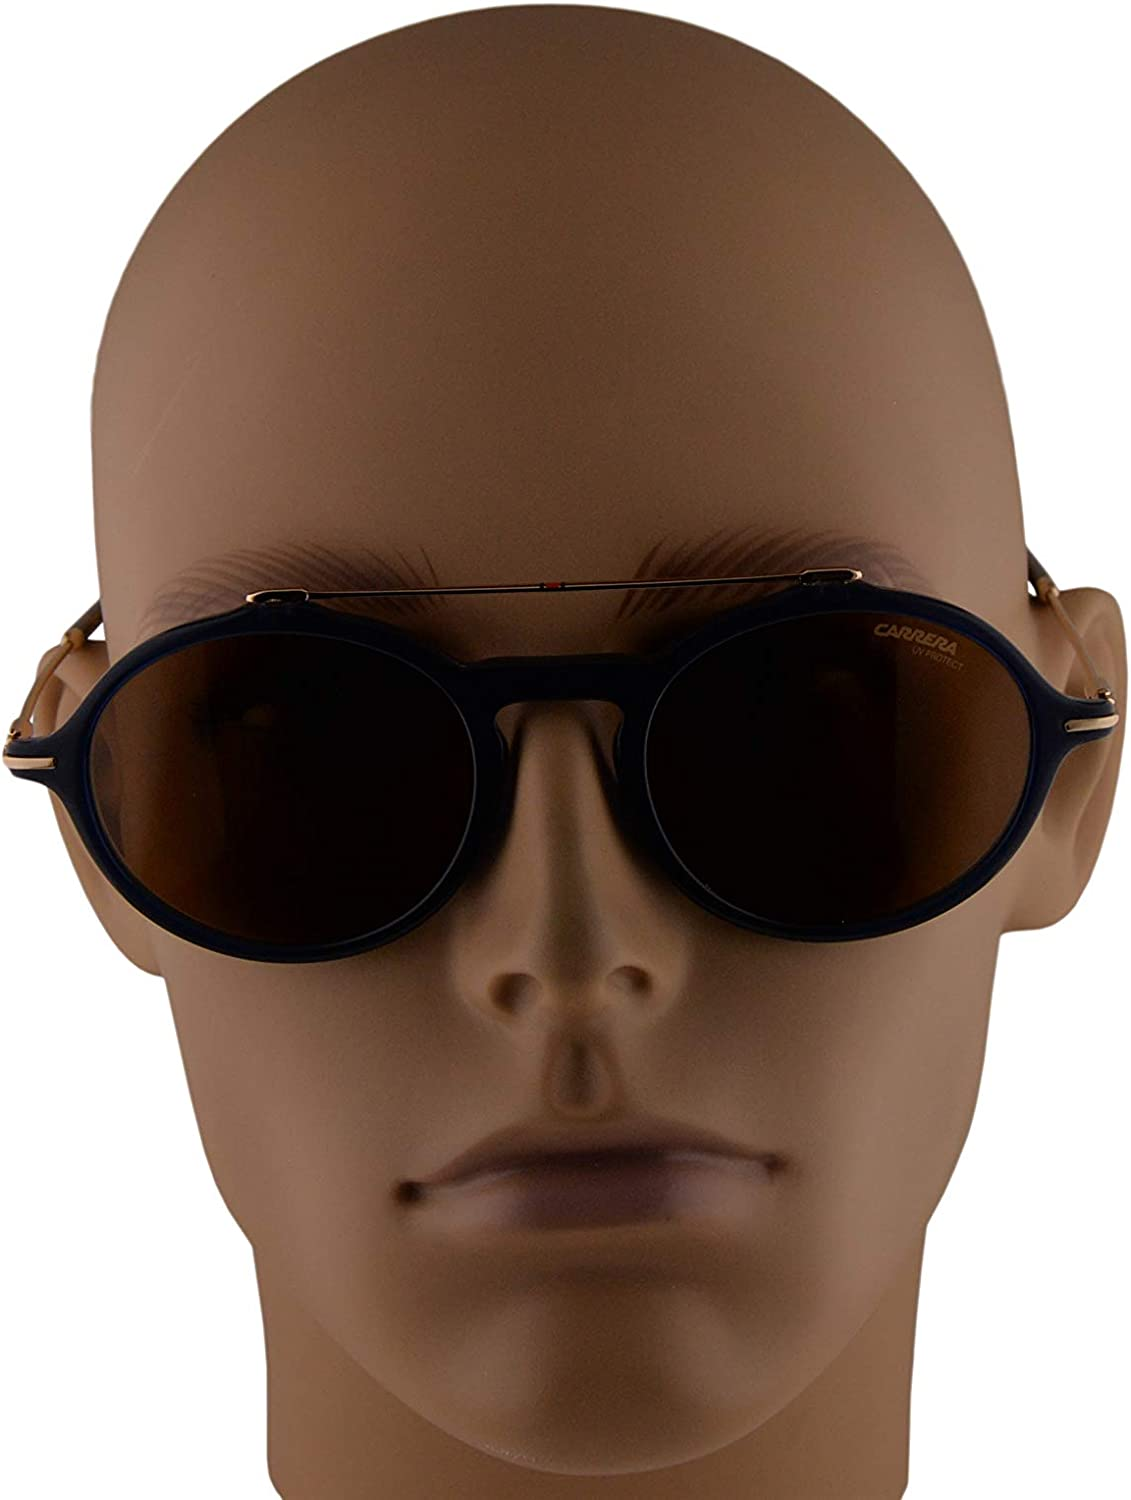 Carrera 195/S Sunglasses Blue w/Brown Lens 50mm PJP70 CA195/S 195S : Clothing, Shoes & Jewelry